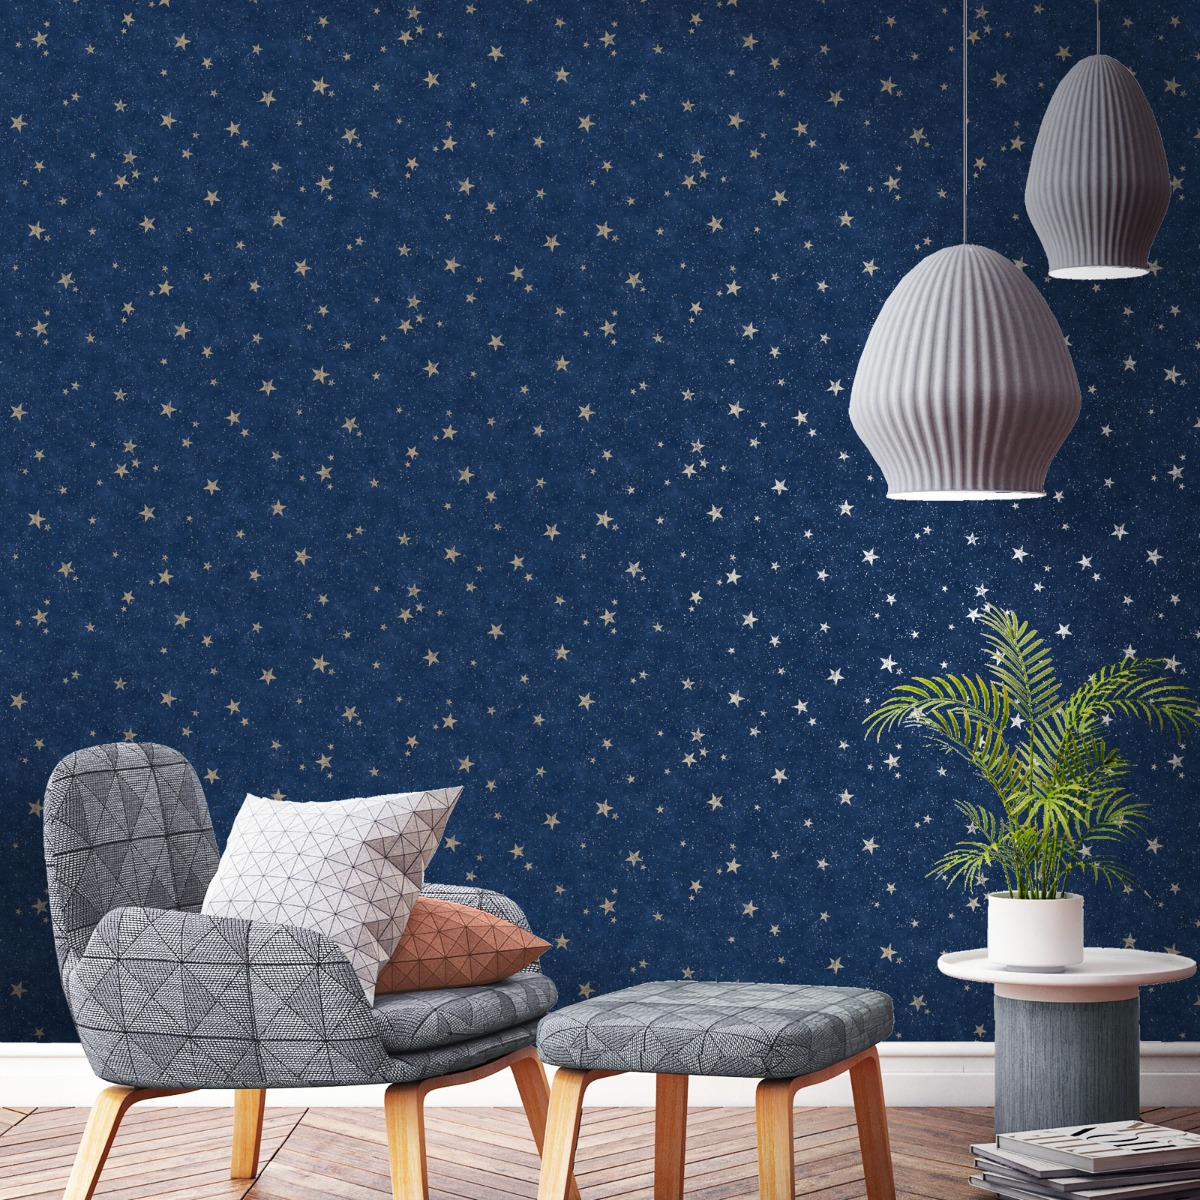 Crown Starlight Stars Wallpaper Navy / Gold M1490